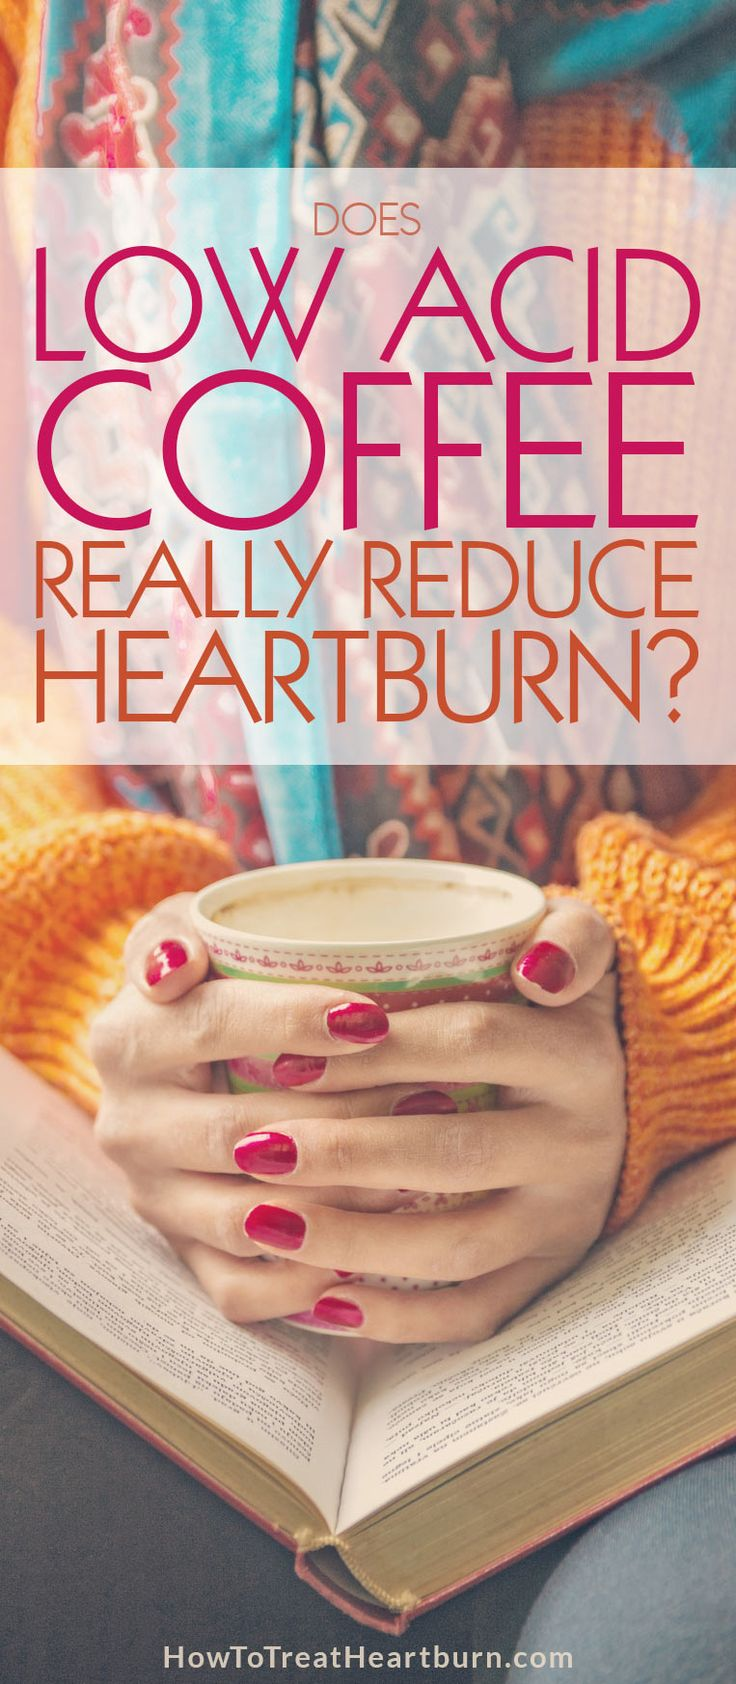 Millions experience heartburn,acid reflux, and other digestive disorders due to acid levels in coffee. Does low acid coffee allow these people to continue enjoying coffee without experiencingheartburn?